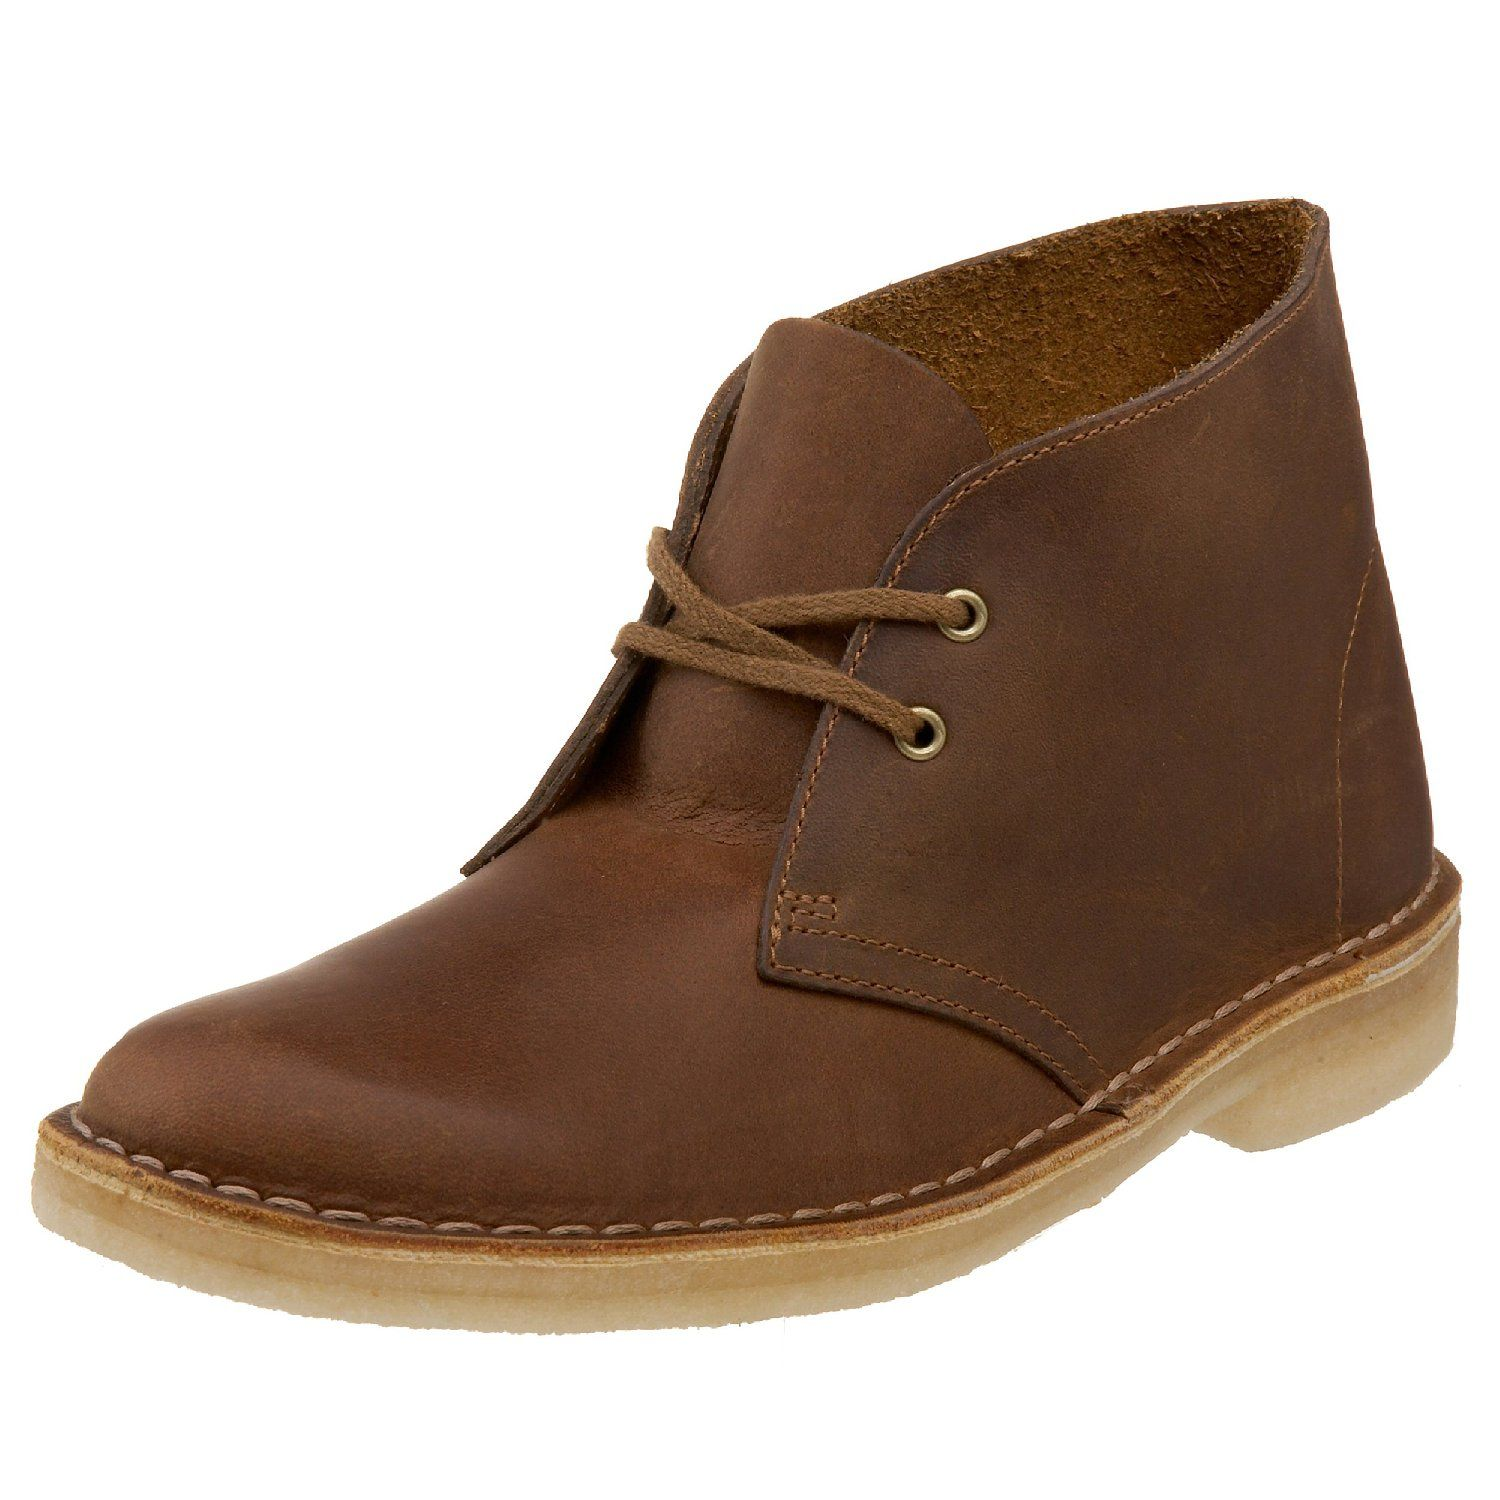 leather clarks desert boots in snow